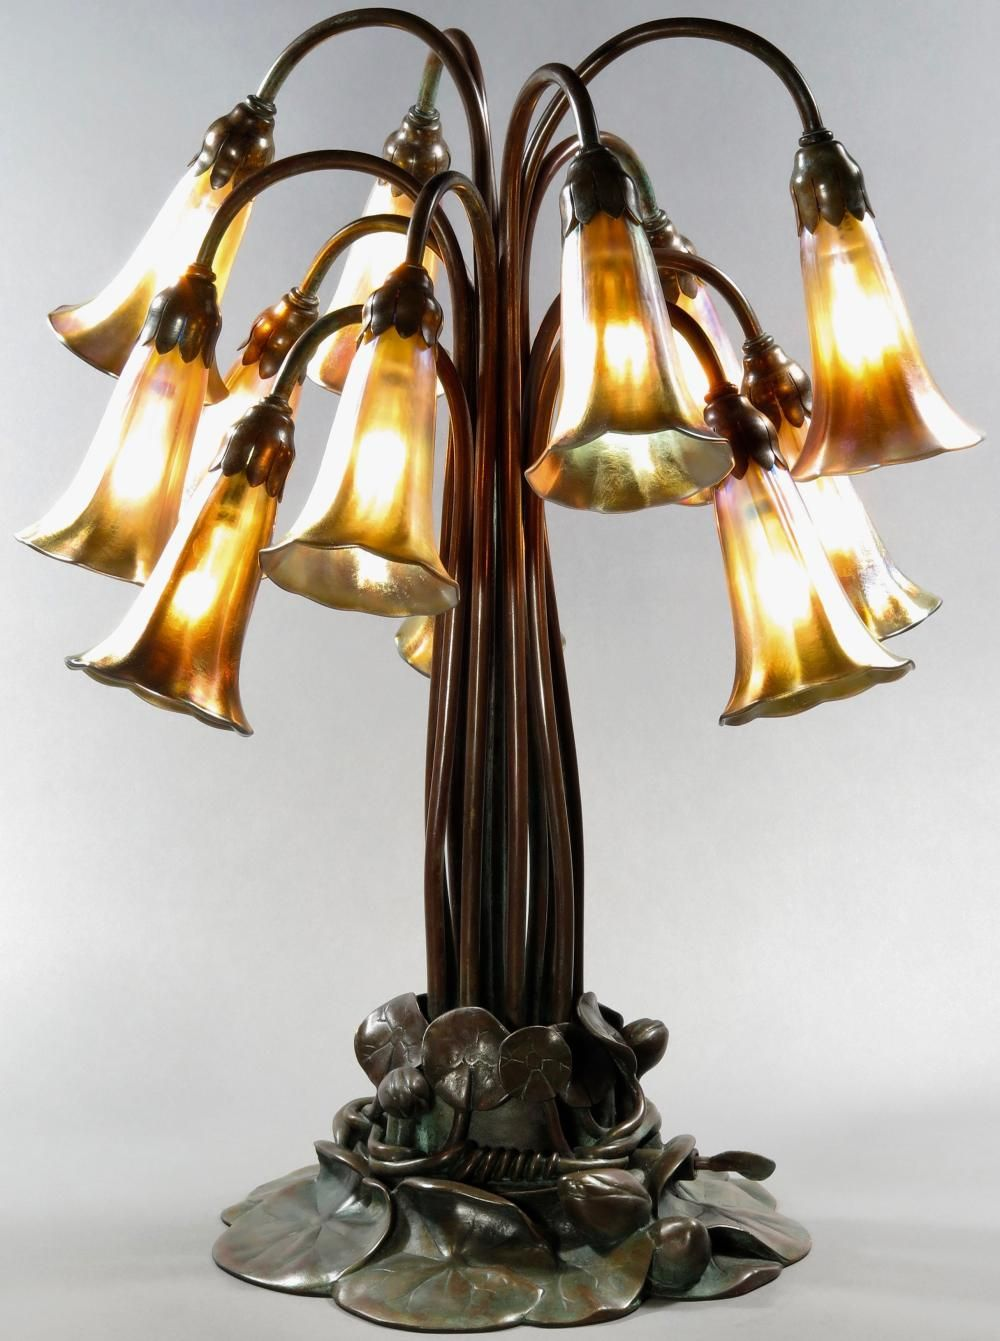 Tiffany Studios 12 Light Lily Lamp In Patina In 2020 Lamp Table Lamp Bronze Lamp